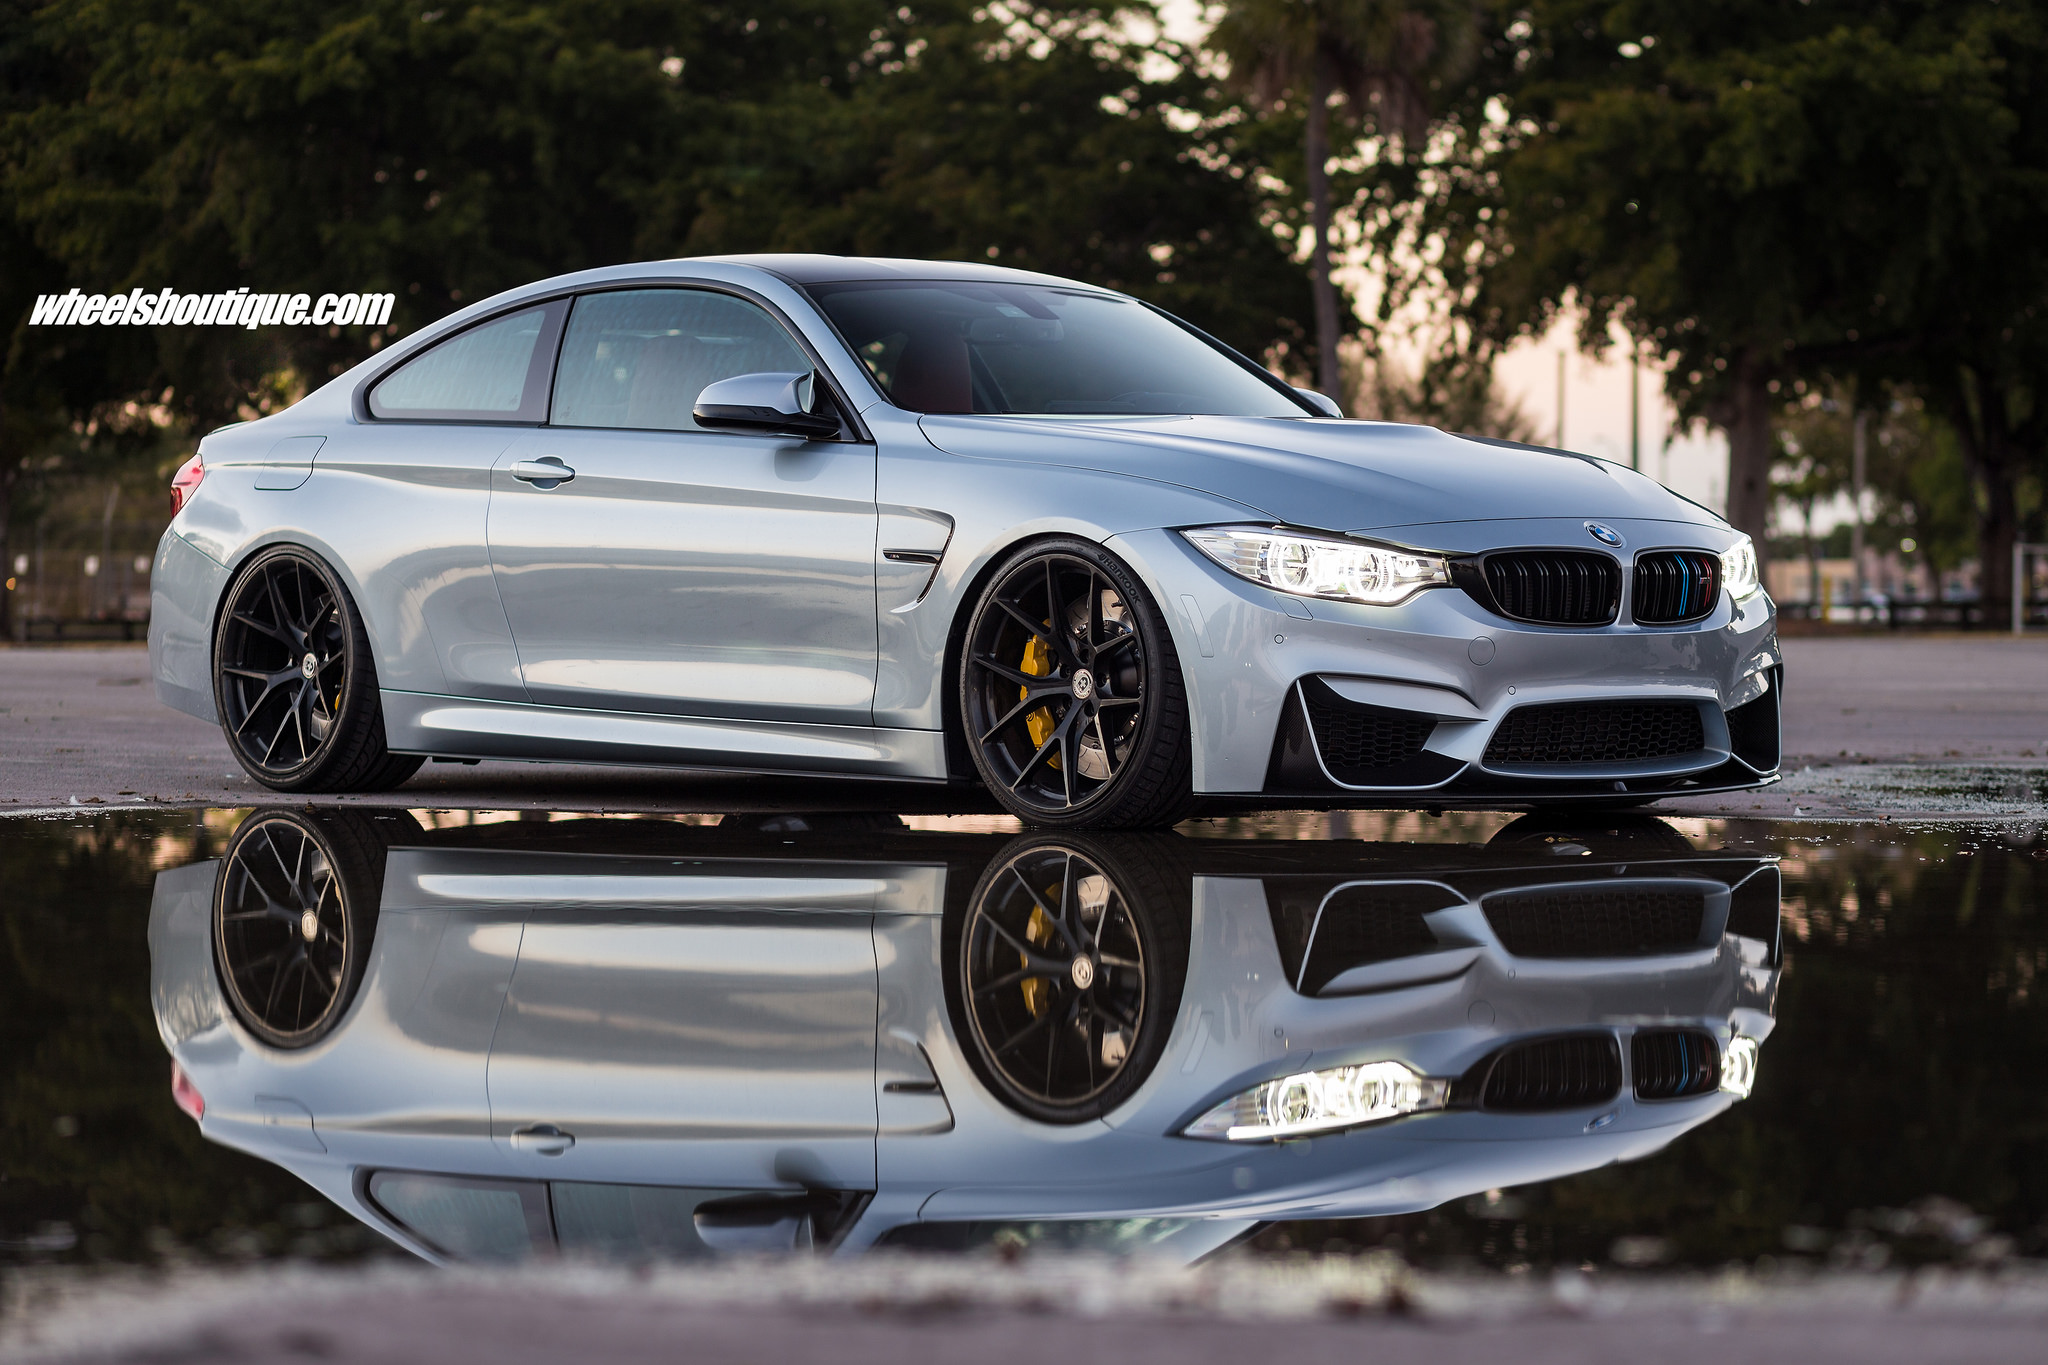 Silverstone Metallic Ii Bmw M4 With Hre P101 Wheels By